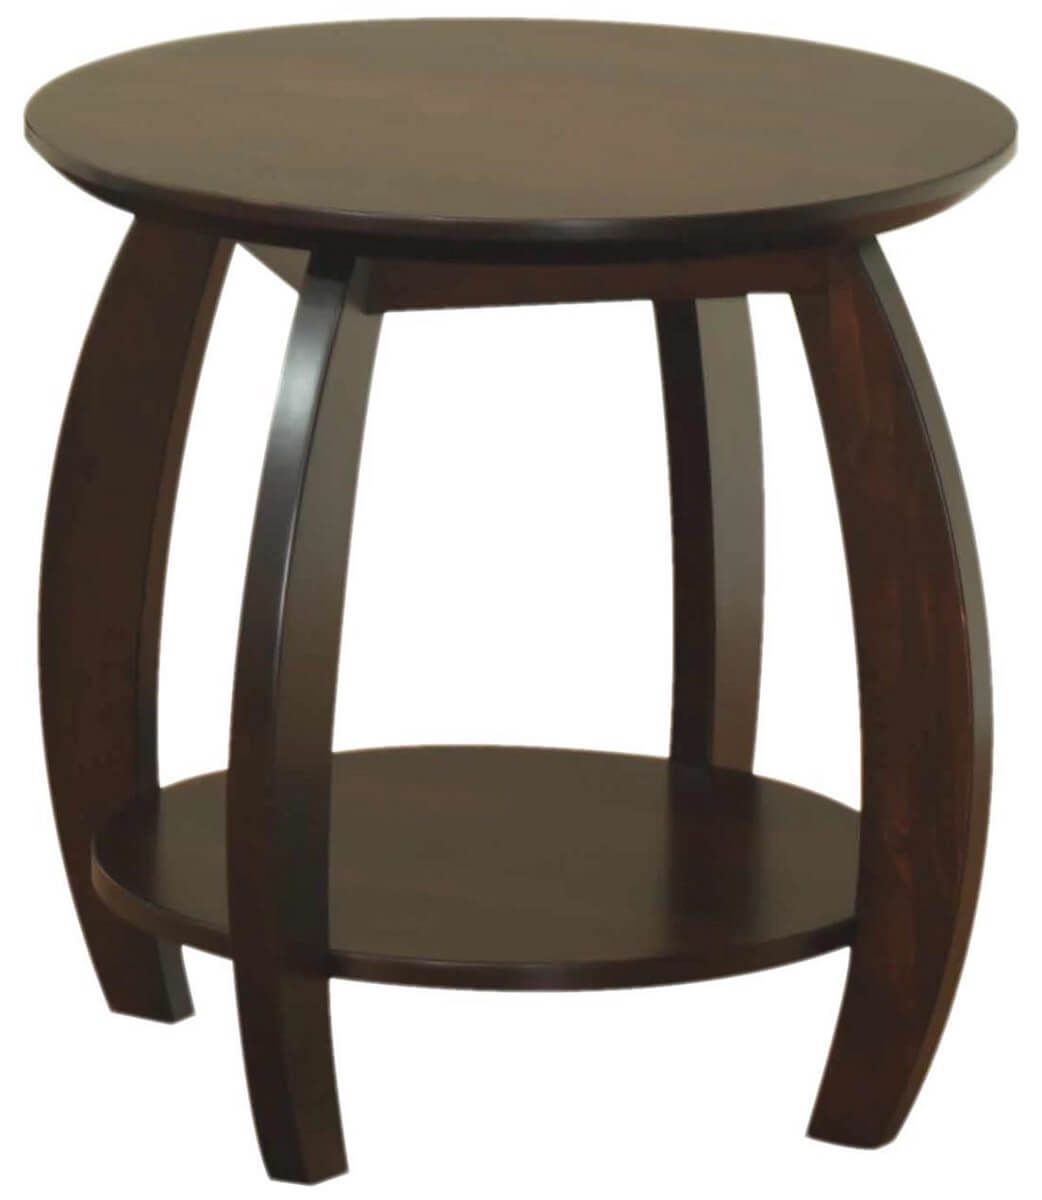 Bromley Round End Table in Brown Maple